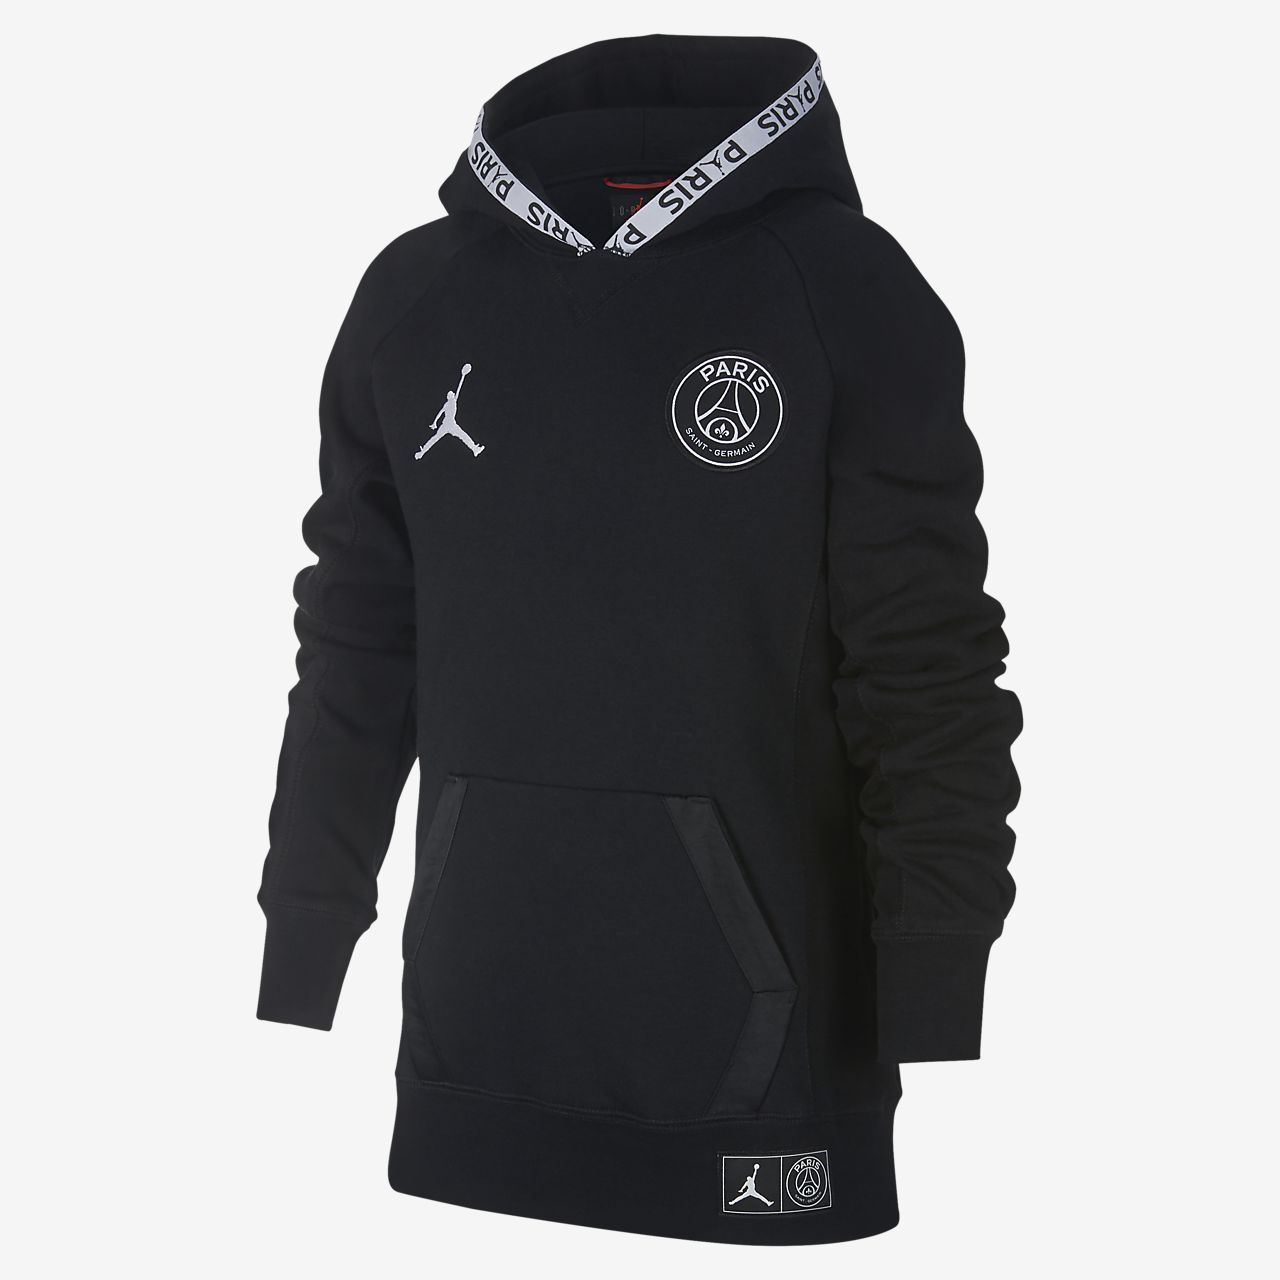 Nike Felpa Cappuccio Paris Saint Germain Black Cat Uomo Black